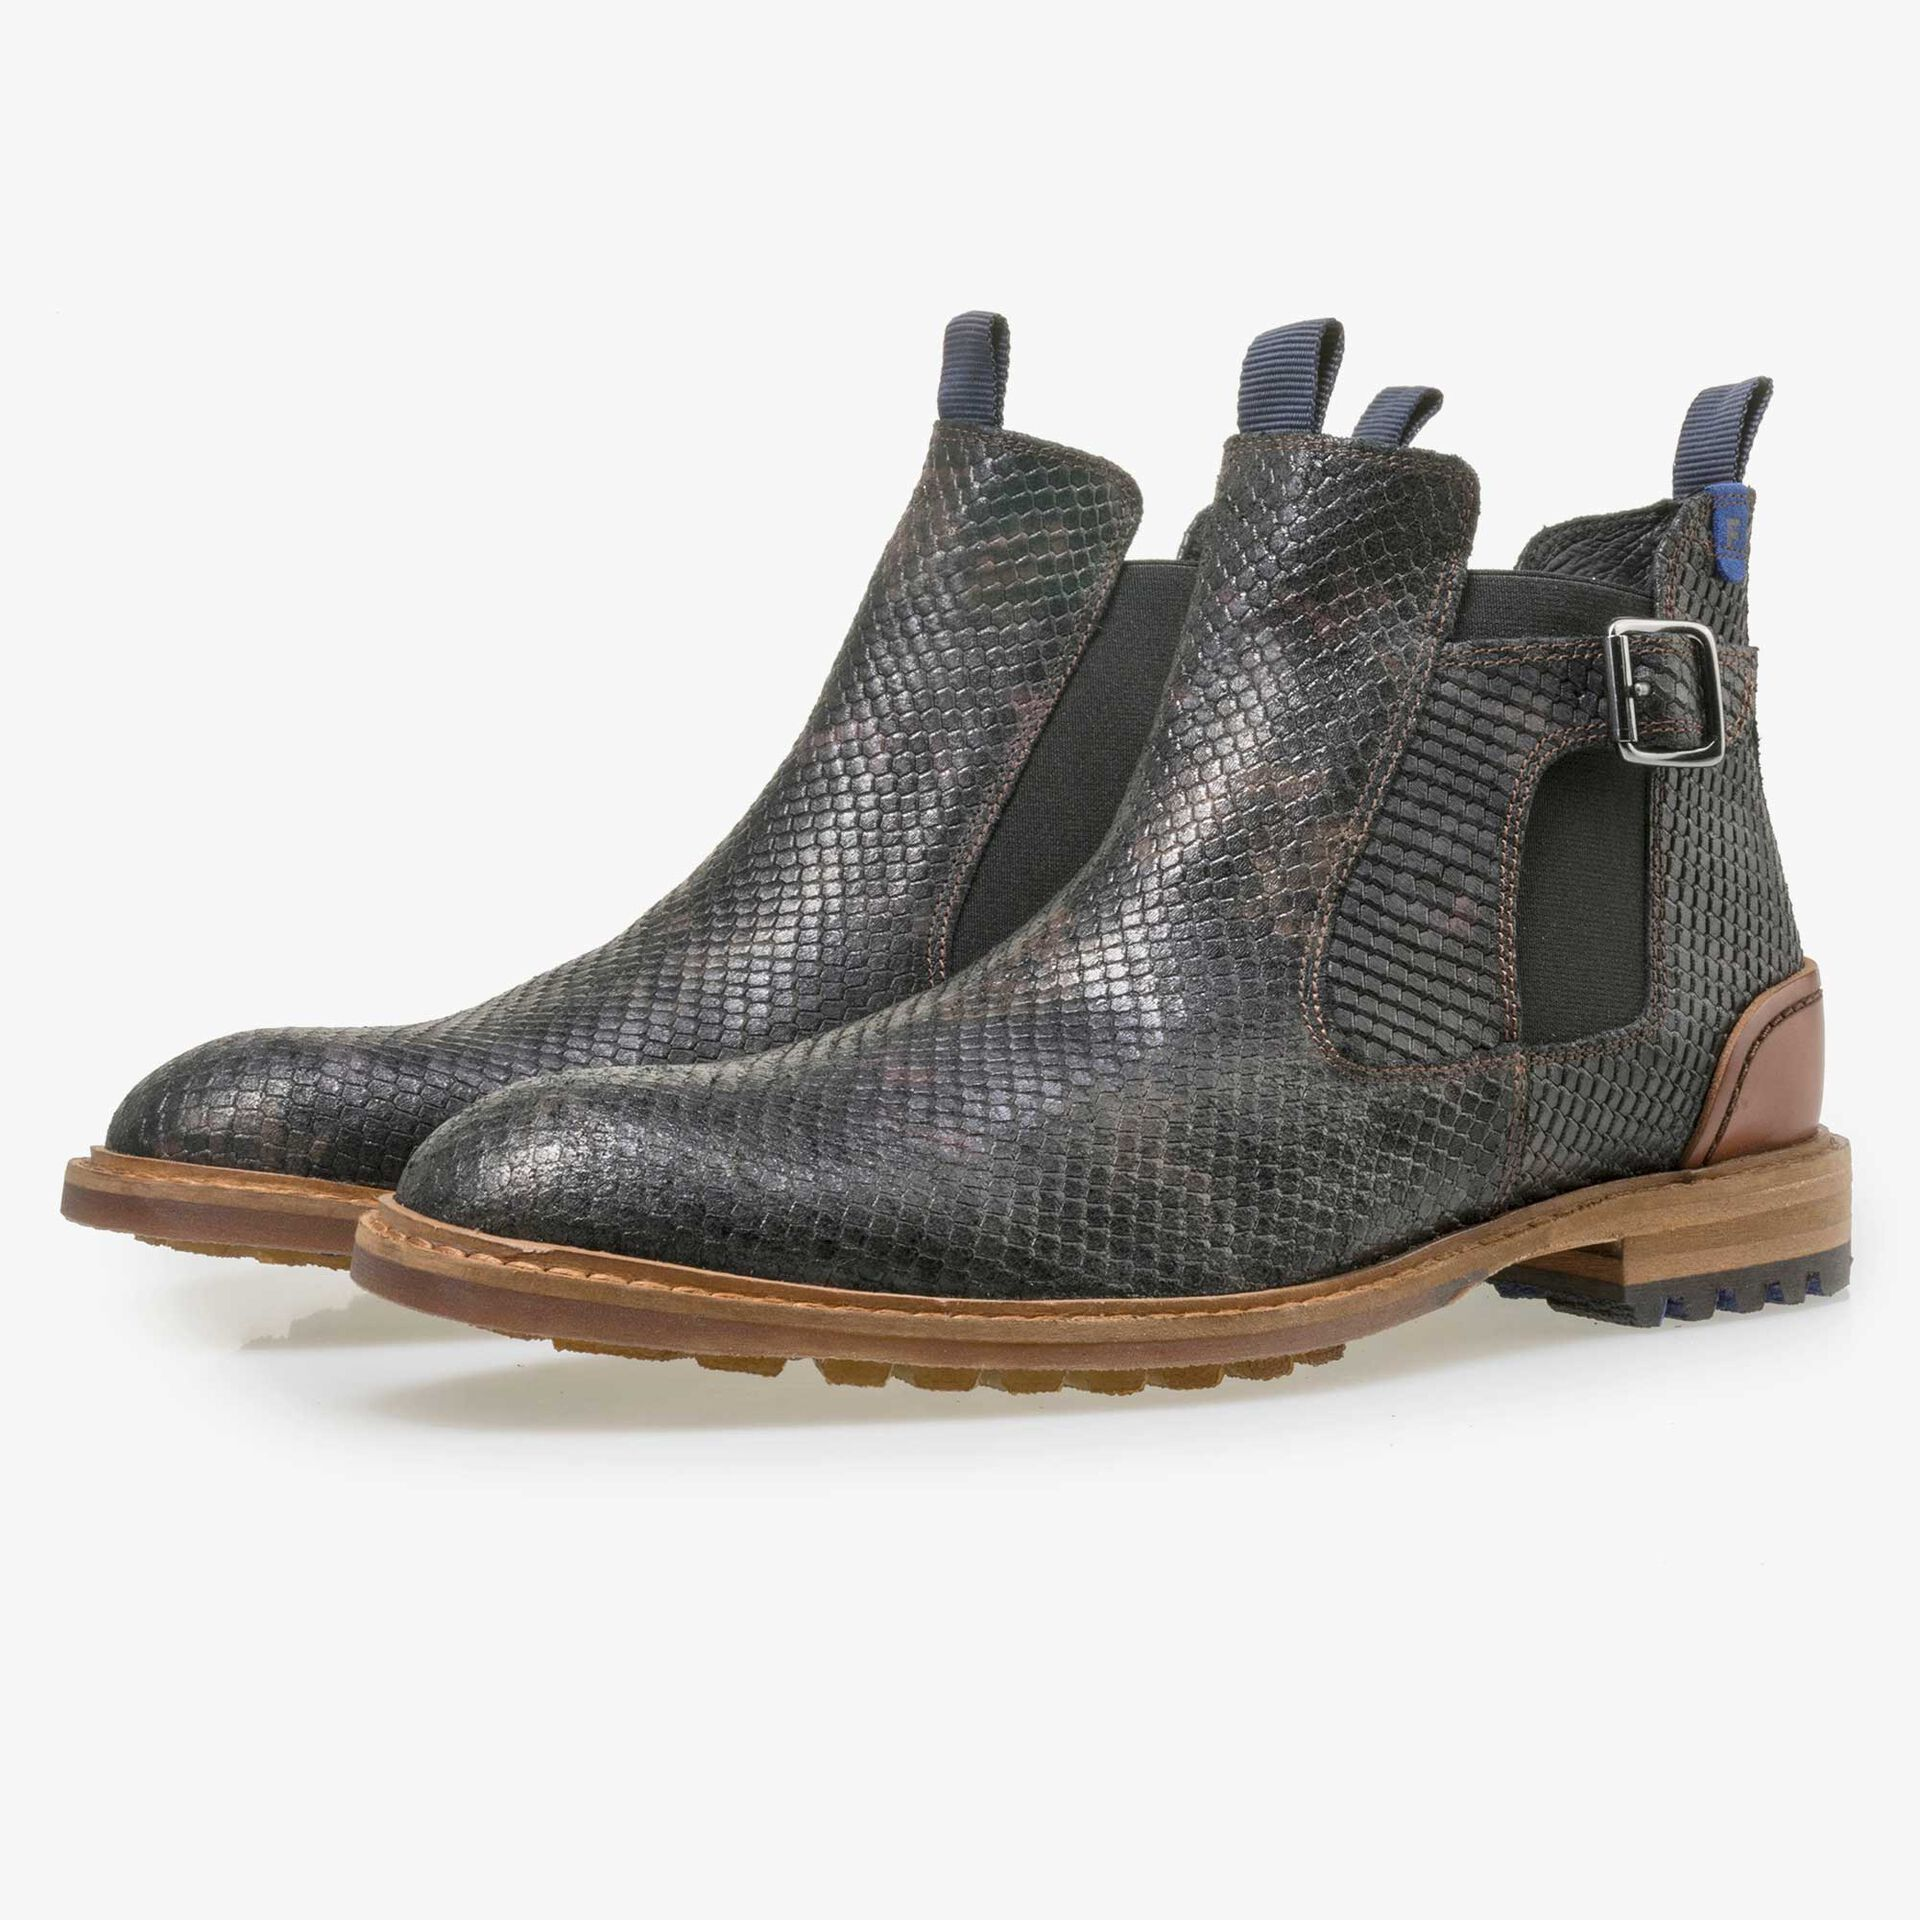 Floris van Bommel men's black leather Chelsea boot finished with a snake print